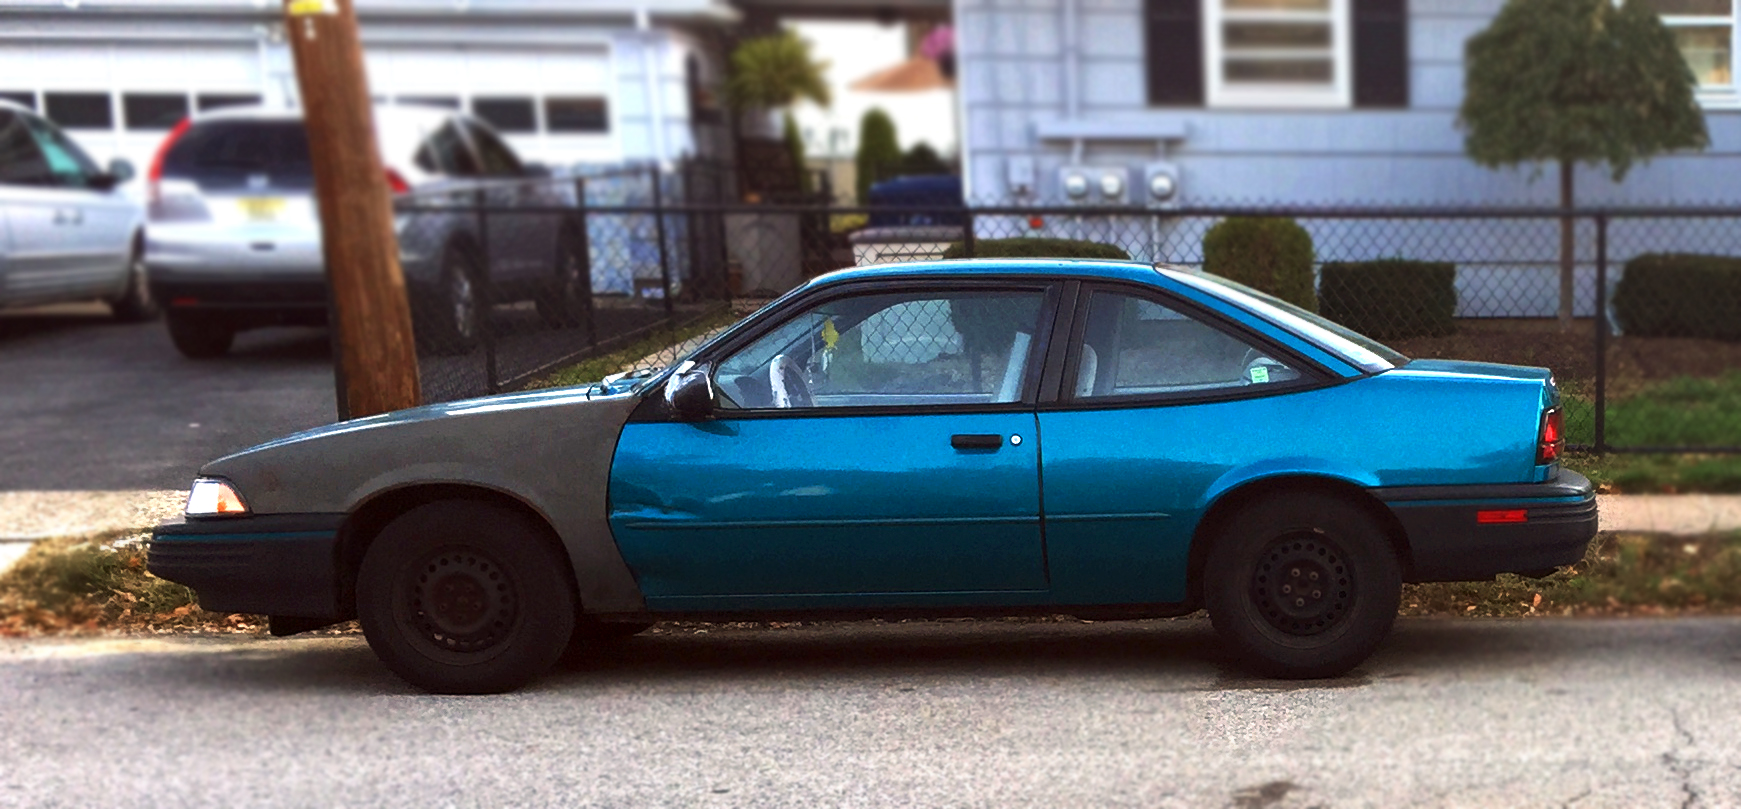 5 Things I Loved About My First Car babyblue